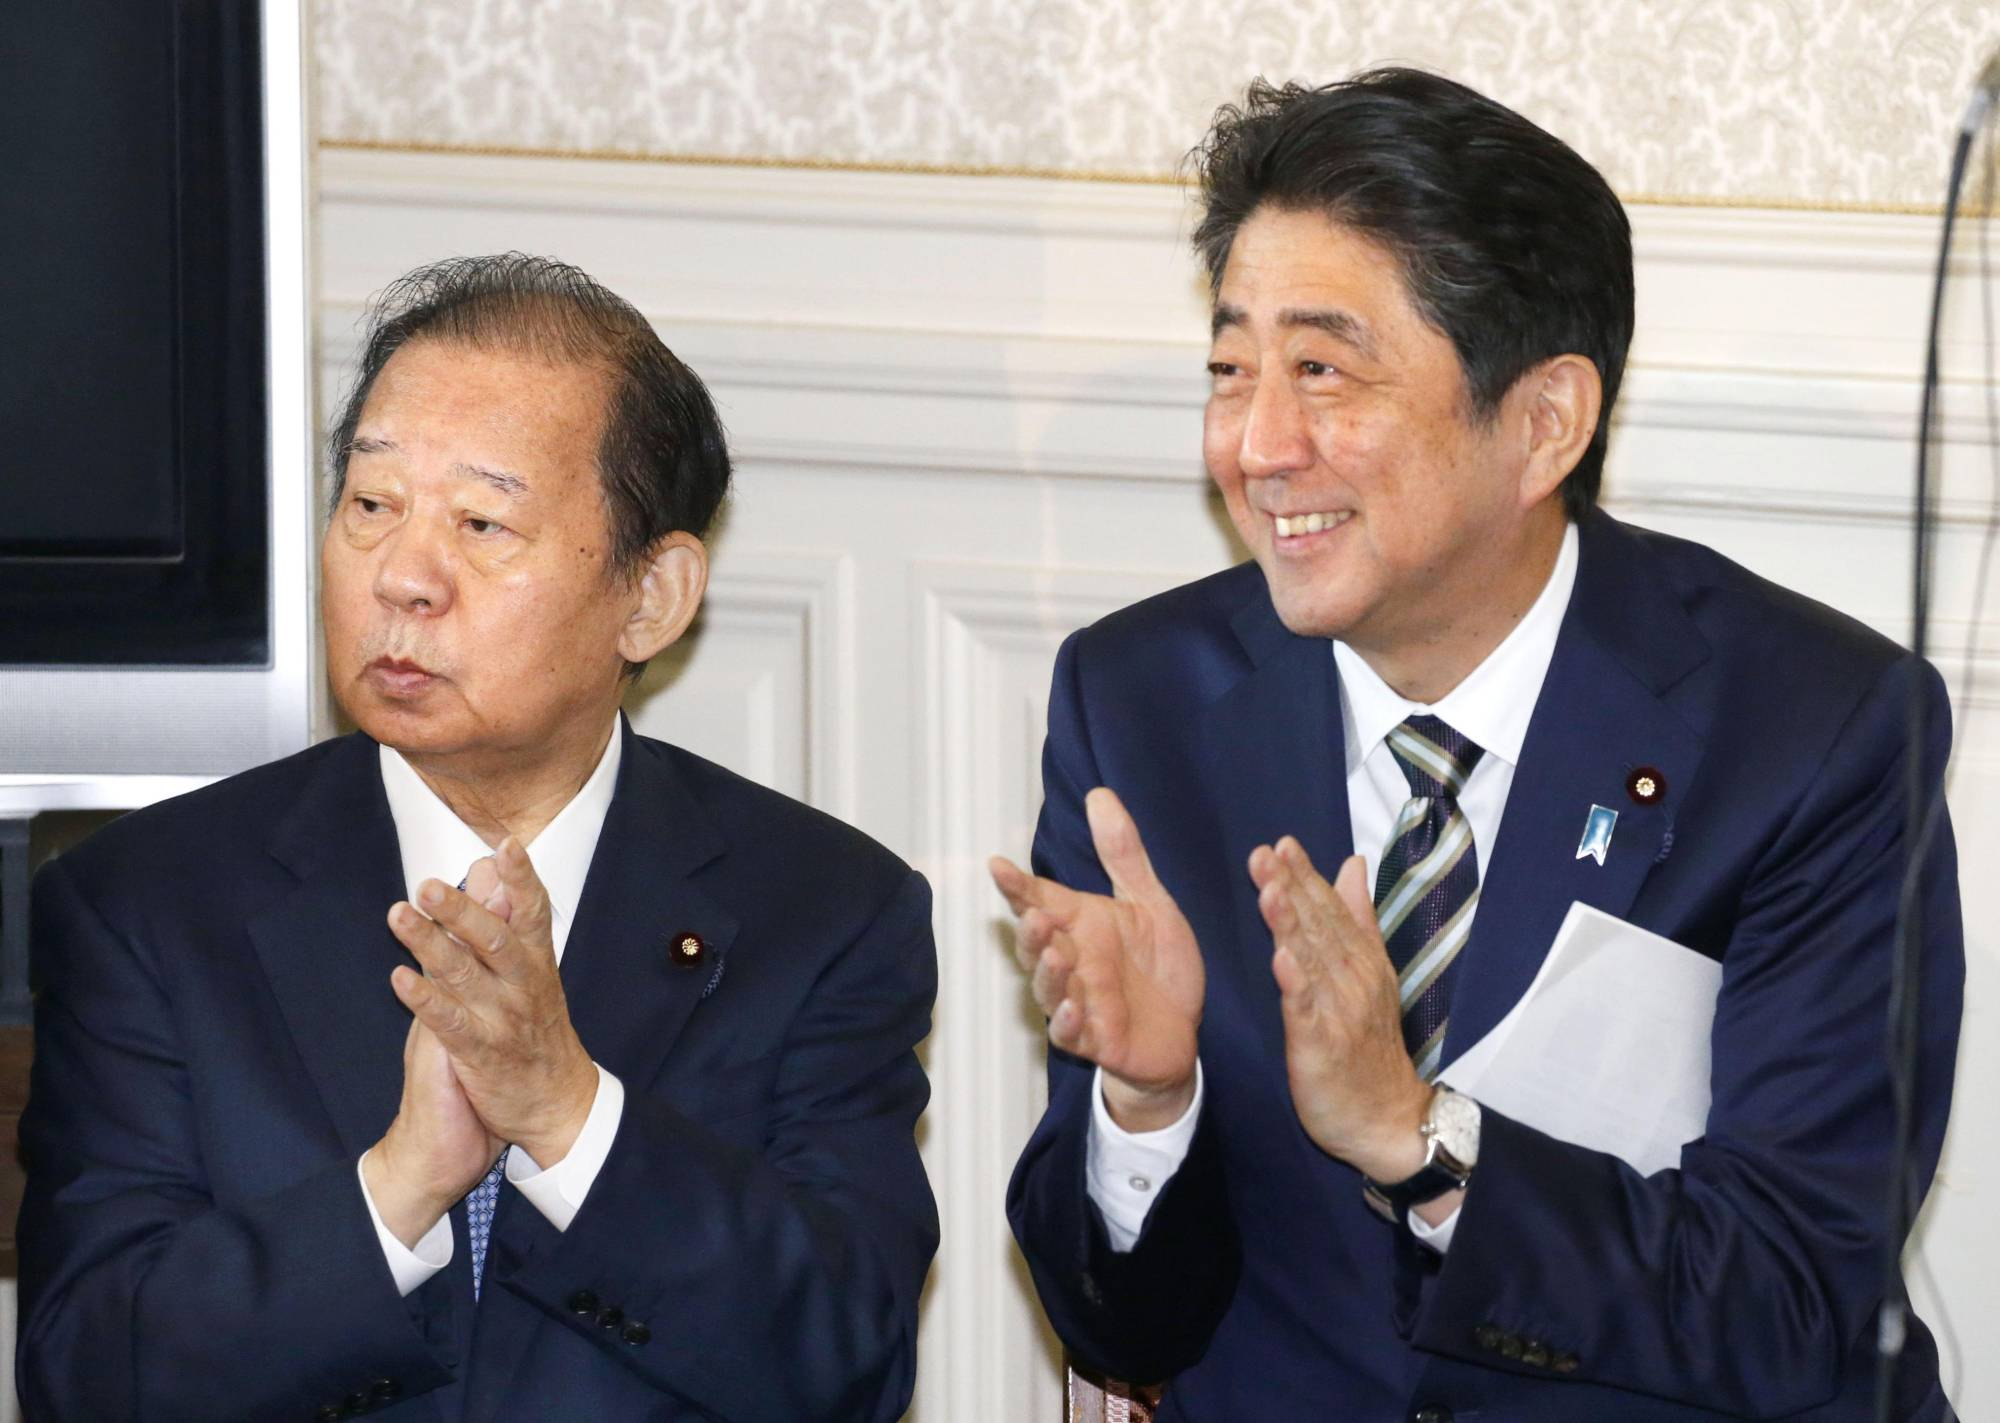 With a record of securing solid Liberal Democratic Party wins in Diet elections and showing strong support for Prime Minister Shinzo Abe, LDP Secretary-General Toshihiro Nikai is a powerful party leader and loyal Abe ally. | KYODO